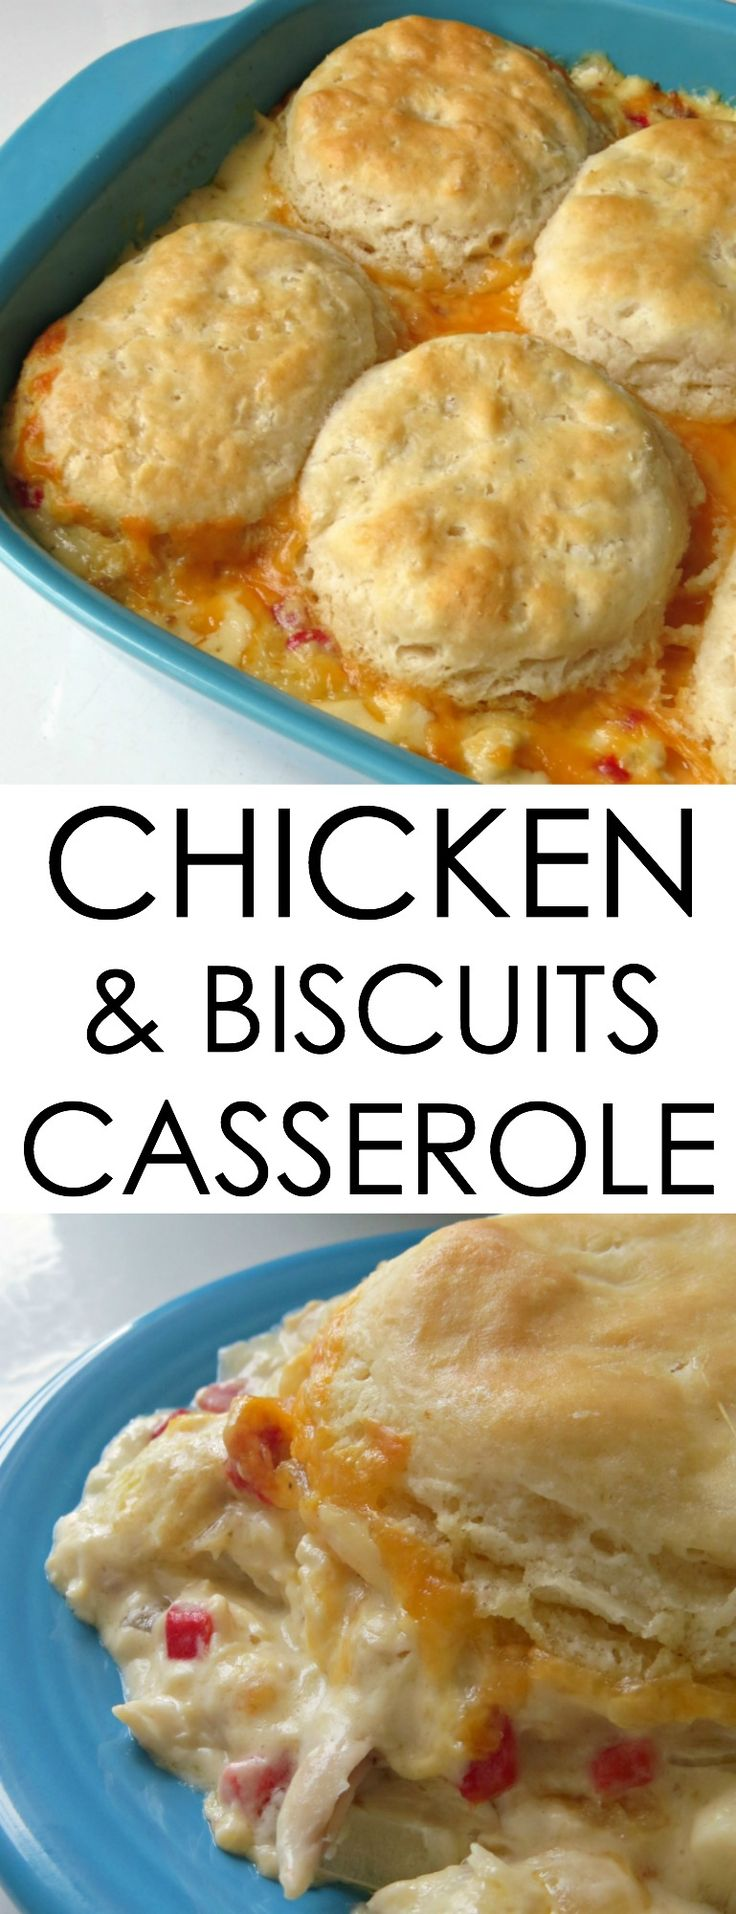 Looking for easy chicken recipes? This Chicken and Biscuits Casserole recipe is comfort food made with Rotisserie chicken that's creamy and delicious!